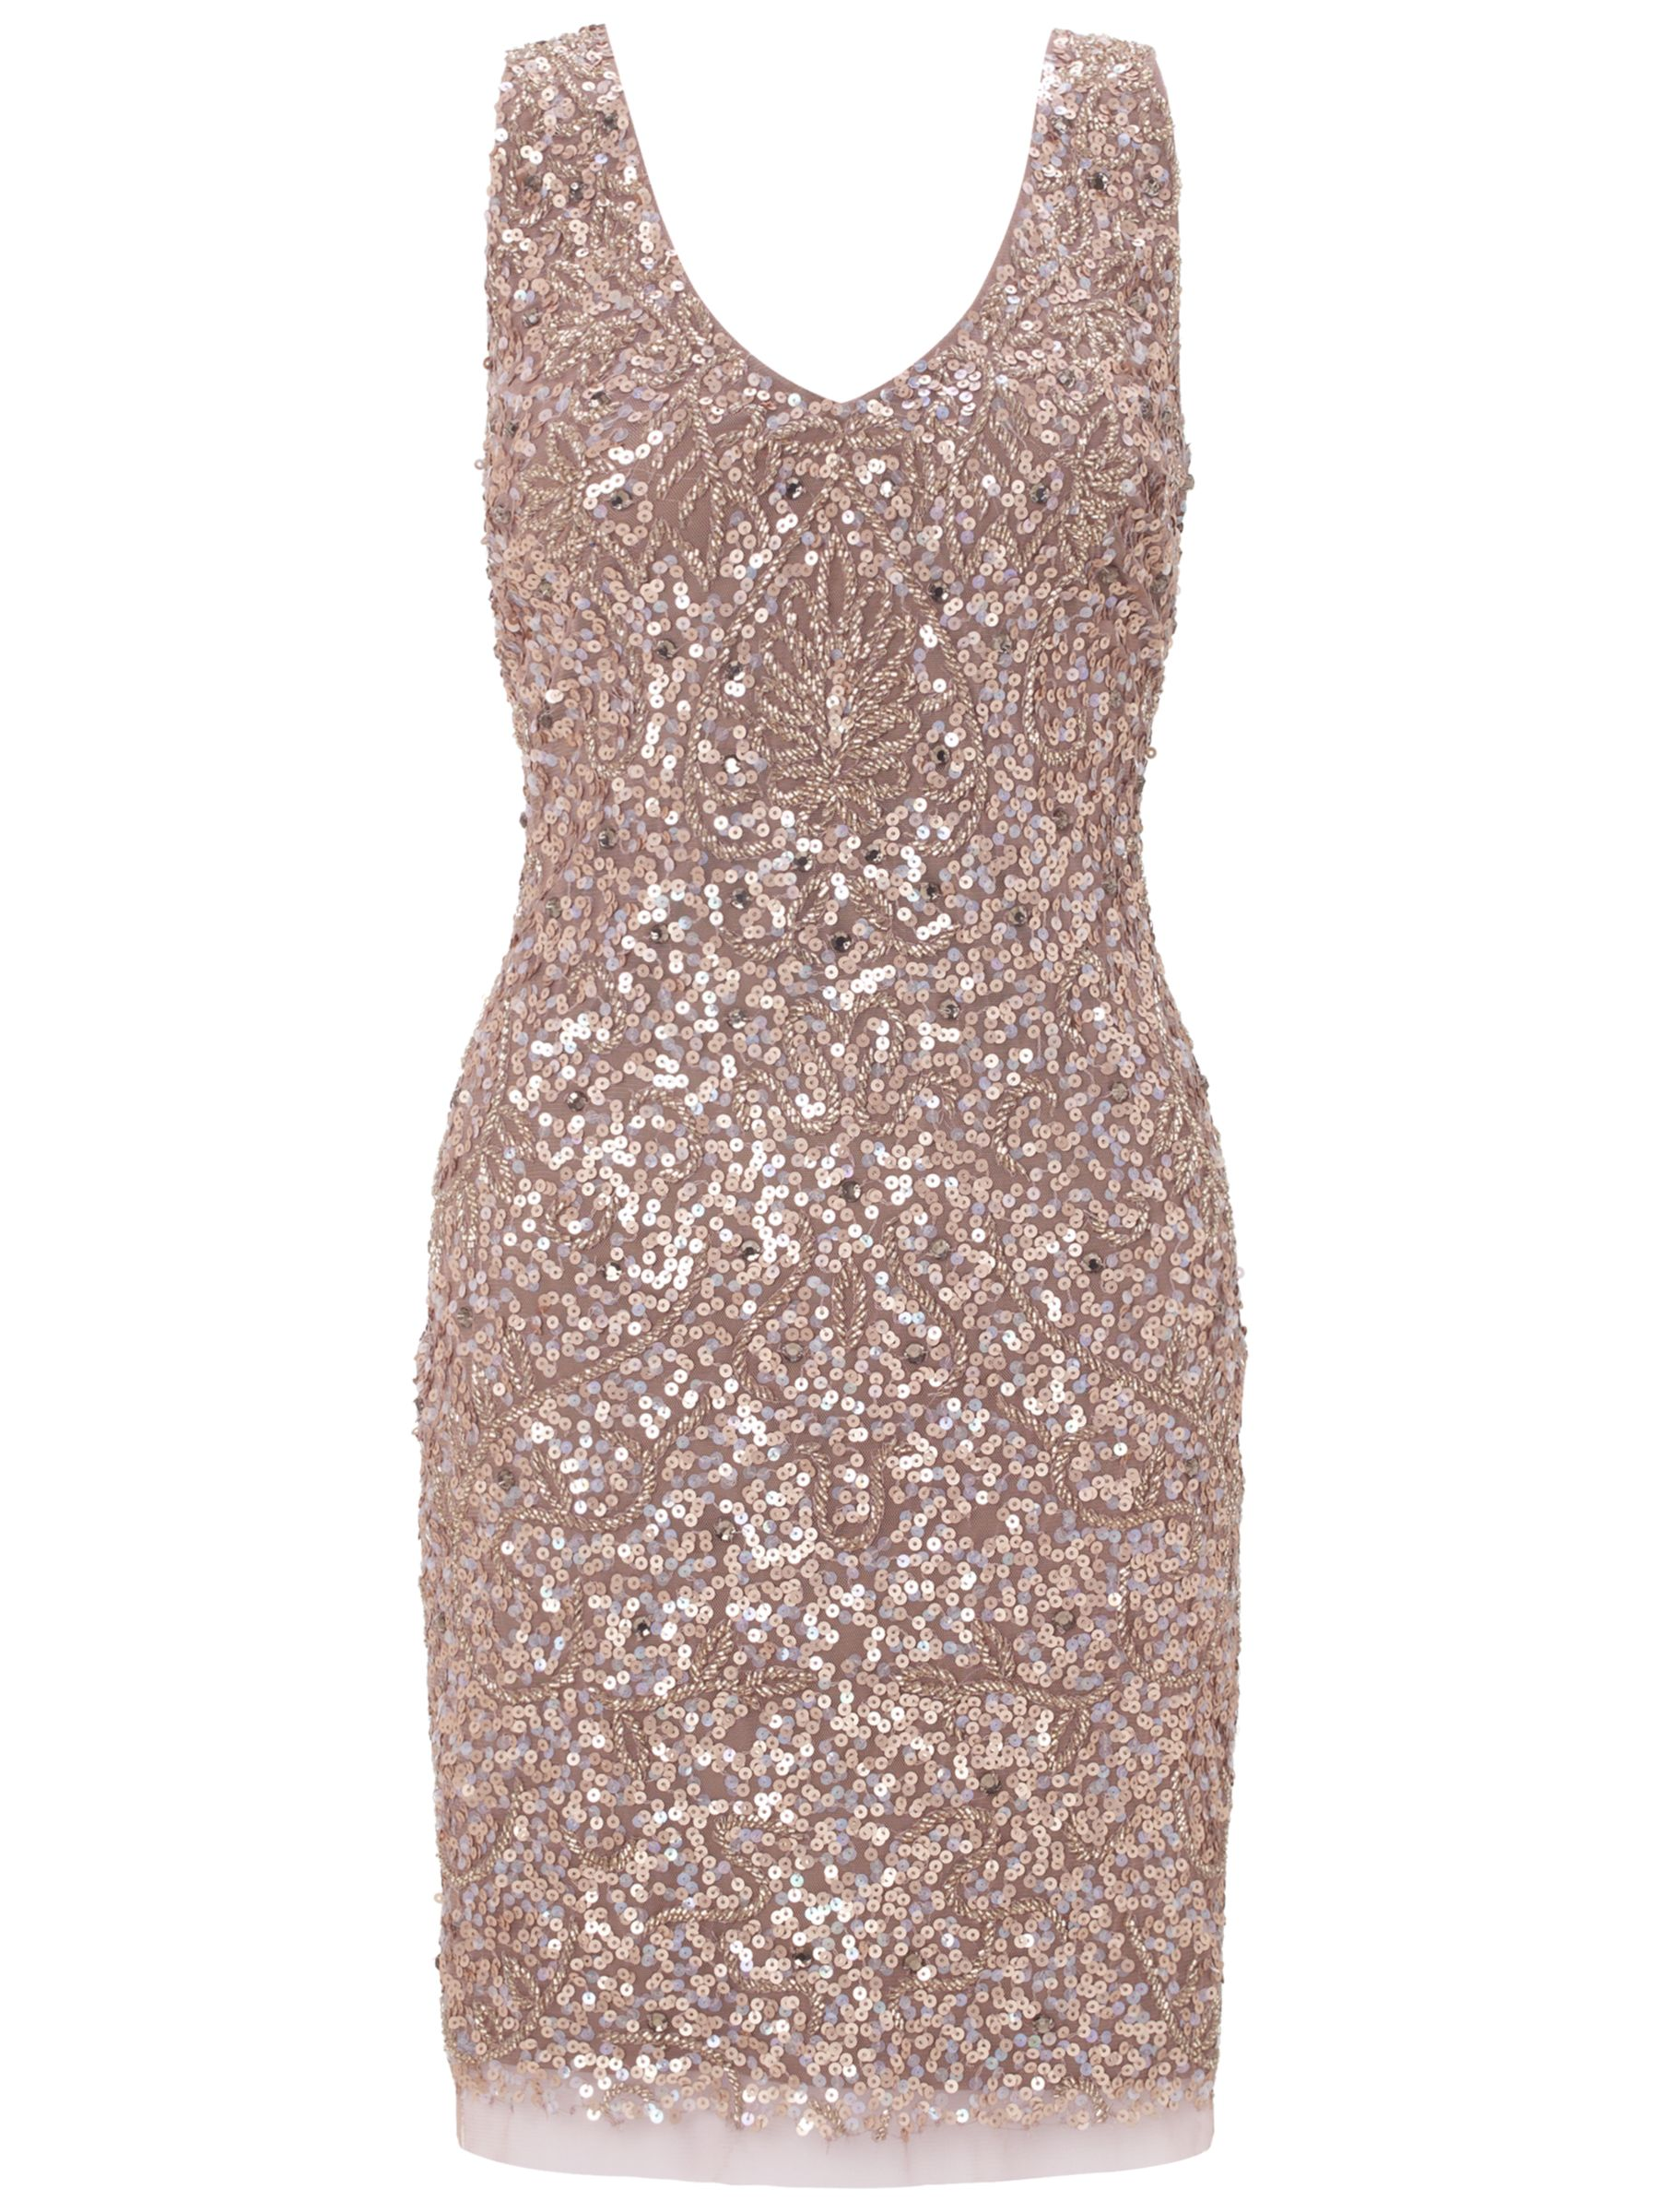 aidan mattox double-v cocktail dress rose gold, aidan, mattox, double-v, cocktail, dress, rose, gold, aidan mattox, 10|12|8|6|16|14|4, women, womens dresses, party outfits, party dresses, gifts, wedding, wedding clothing, female guests, adult bridesmaids, edition magazine, embellishment, 1807169